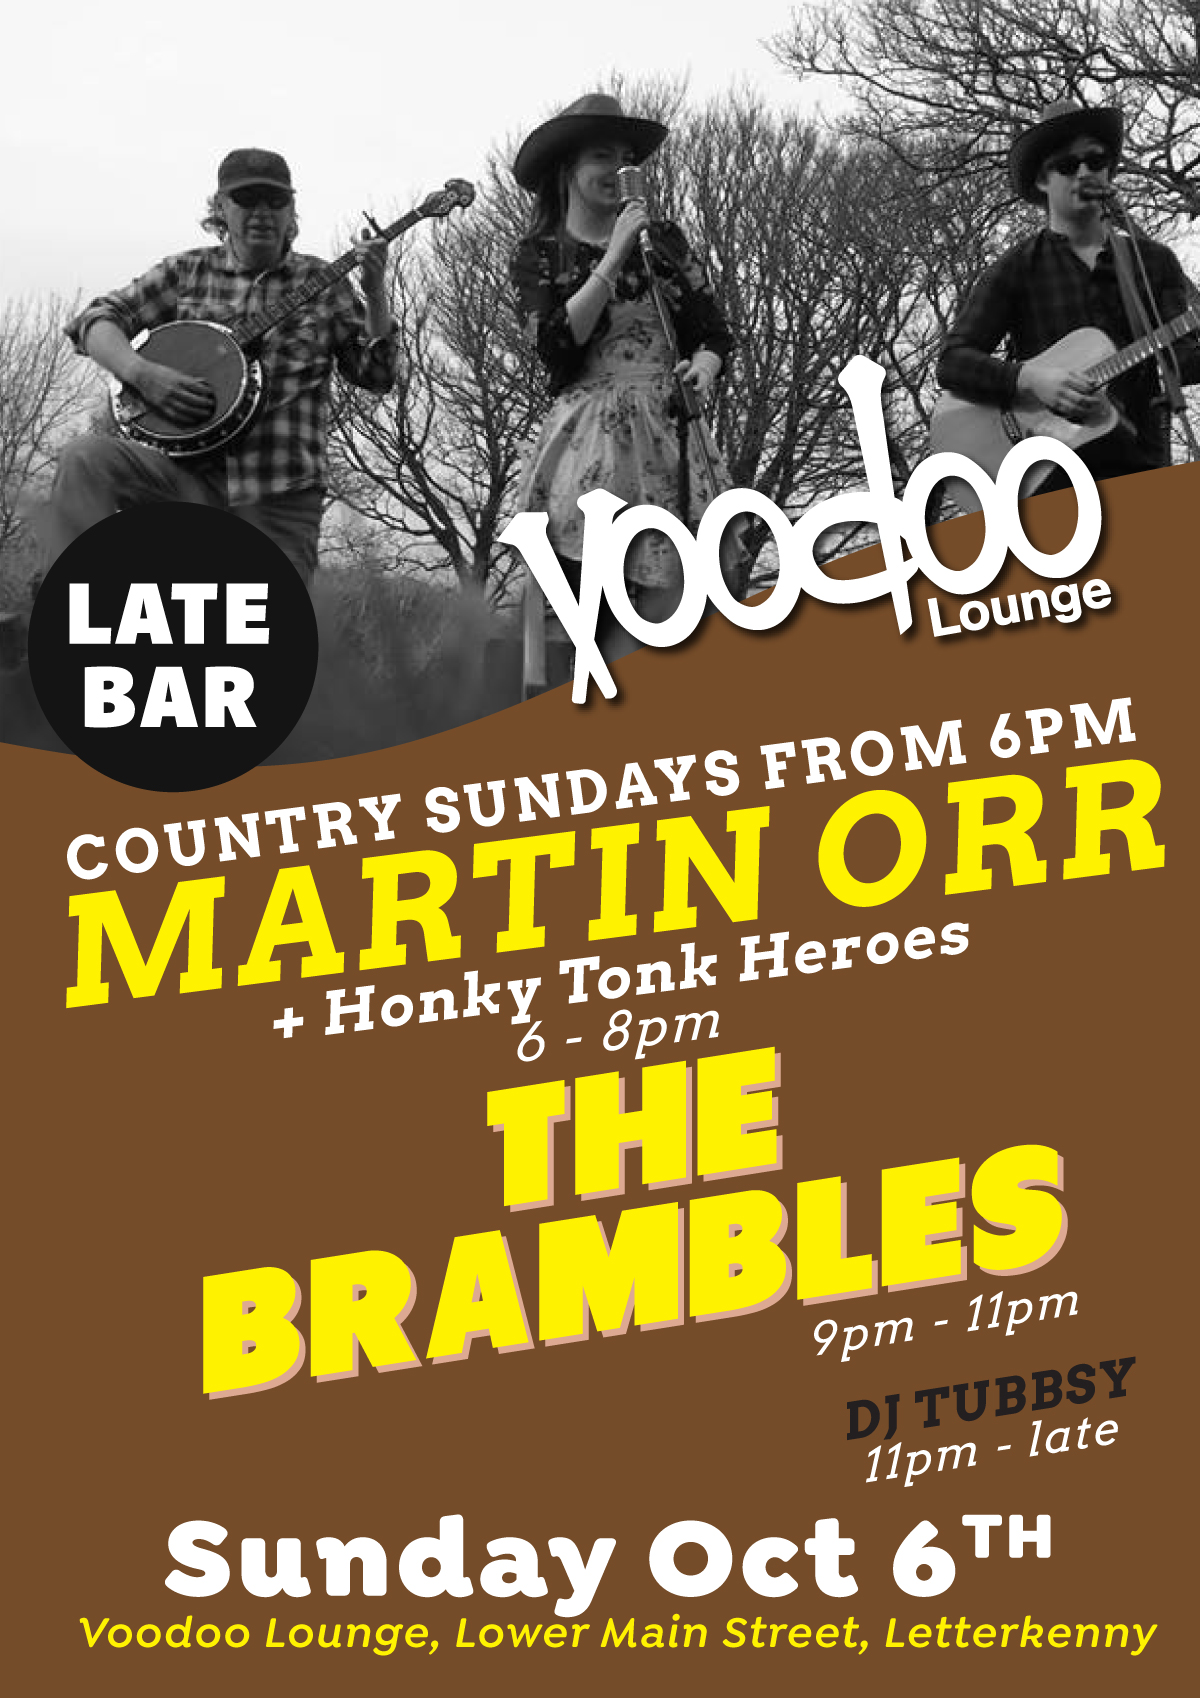 voodoo-venue---SUNDAY----martin-orr---THE-BRAMBLES-SUN-OCT-6-2019.jpg